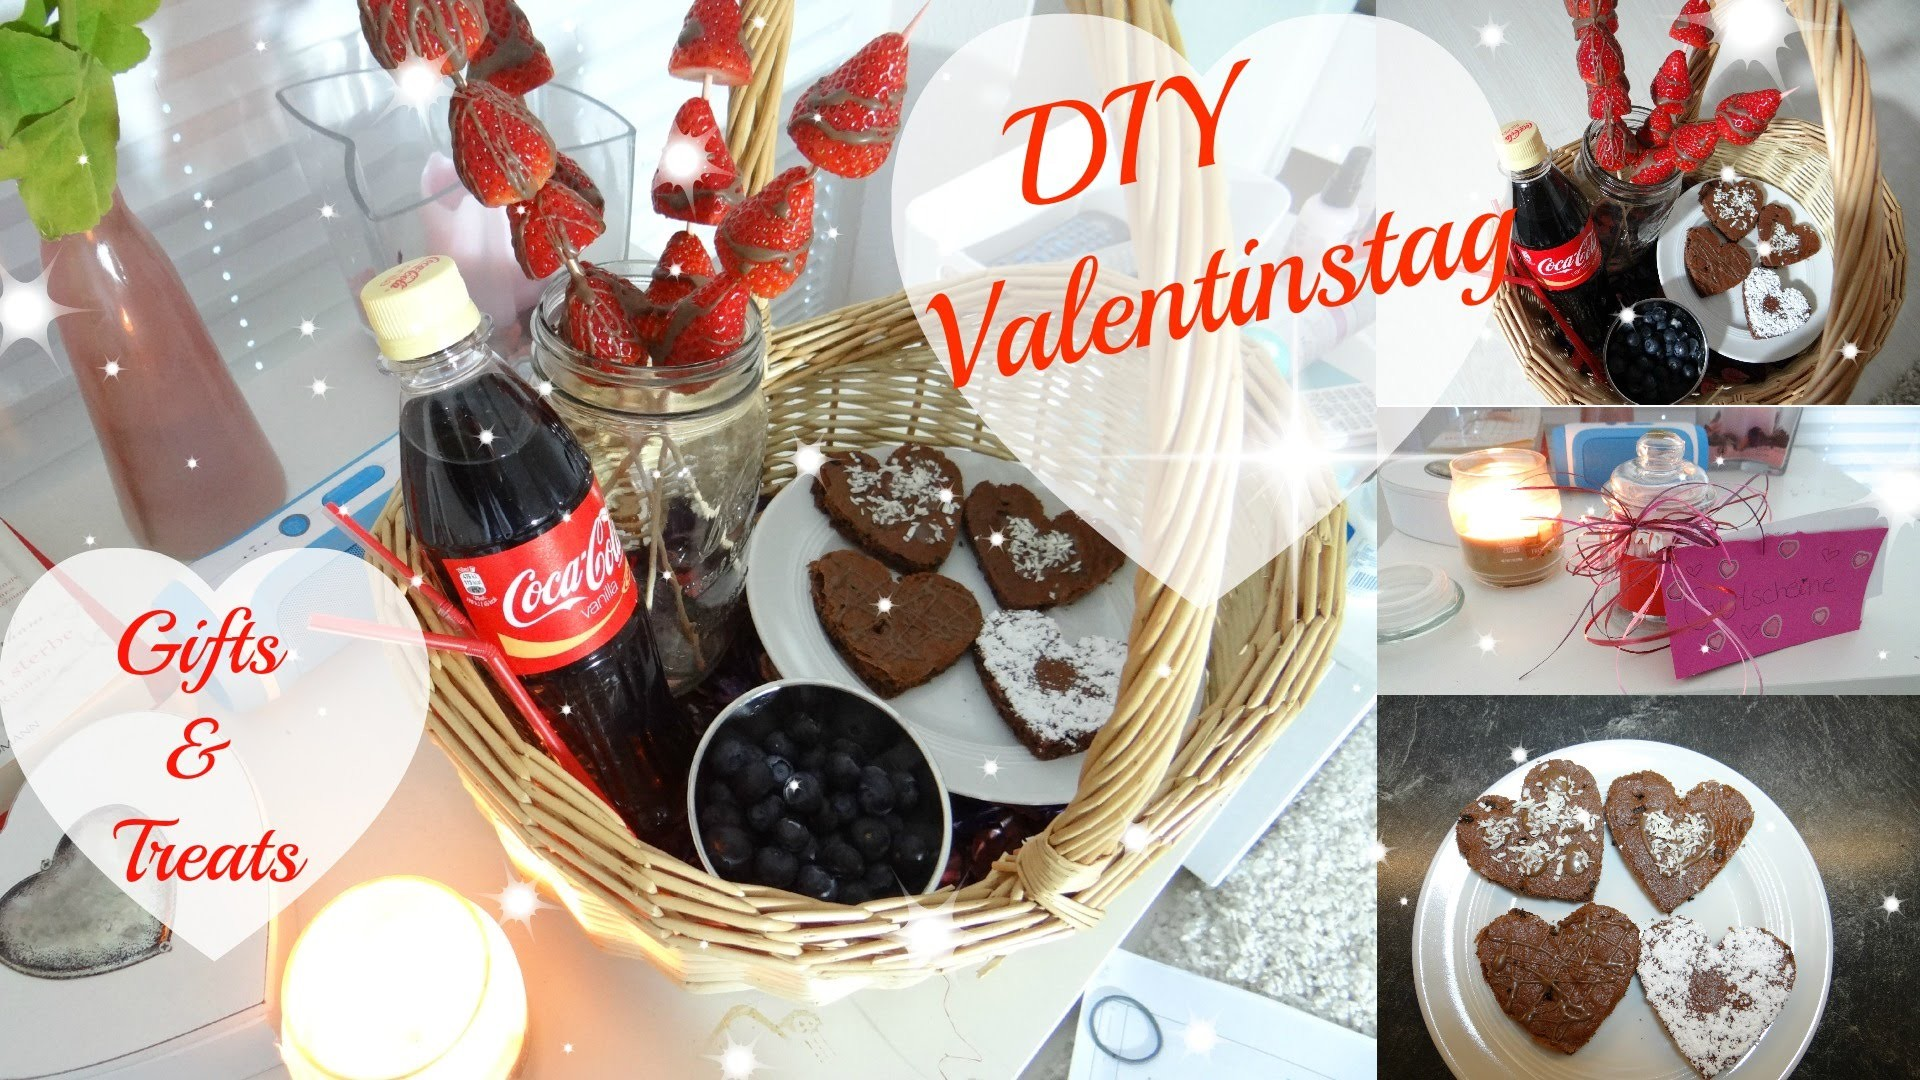 DIY VALENTINSTAG   Gifts & Treats ♡ + OUTTAKES!